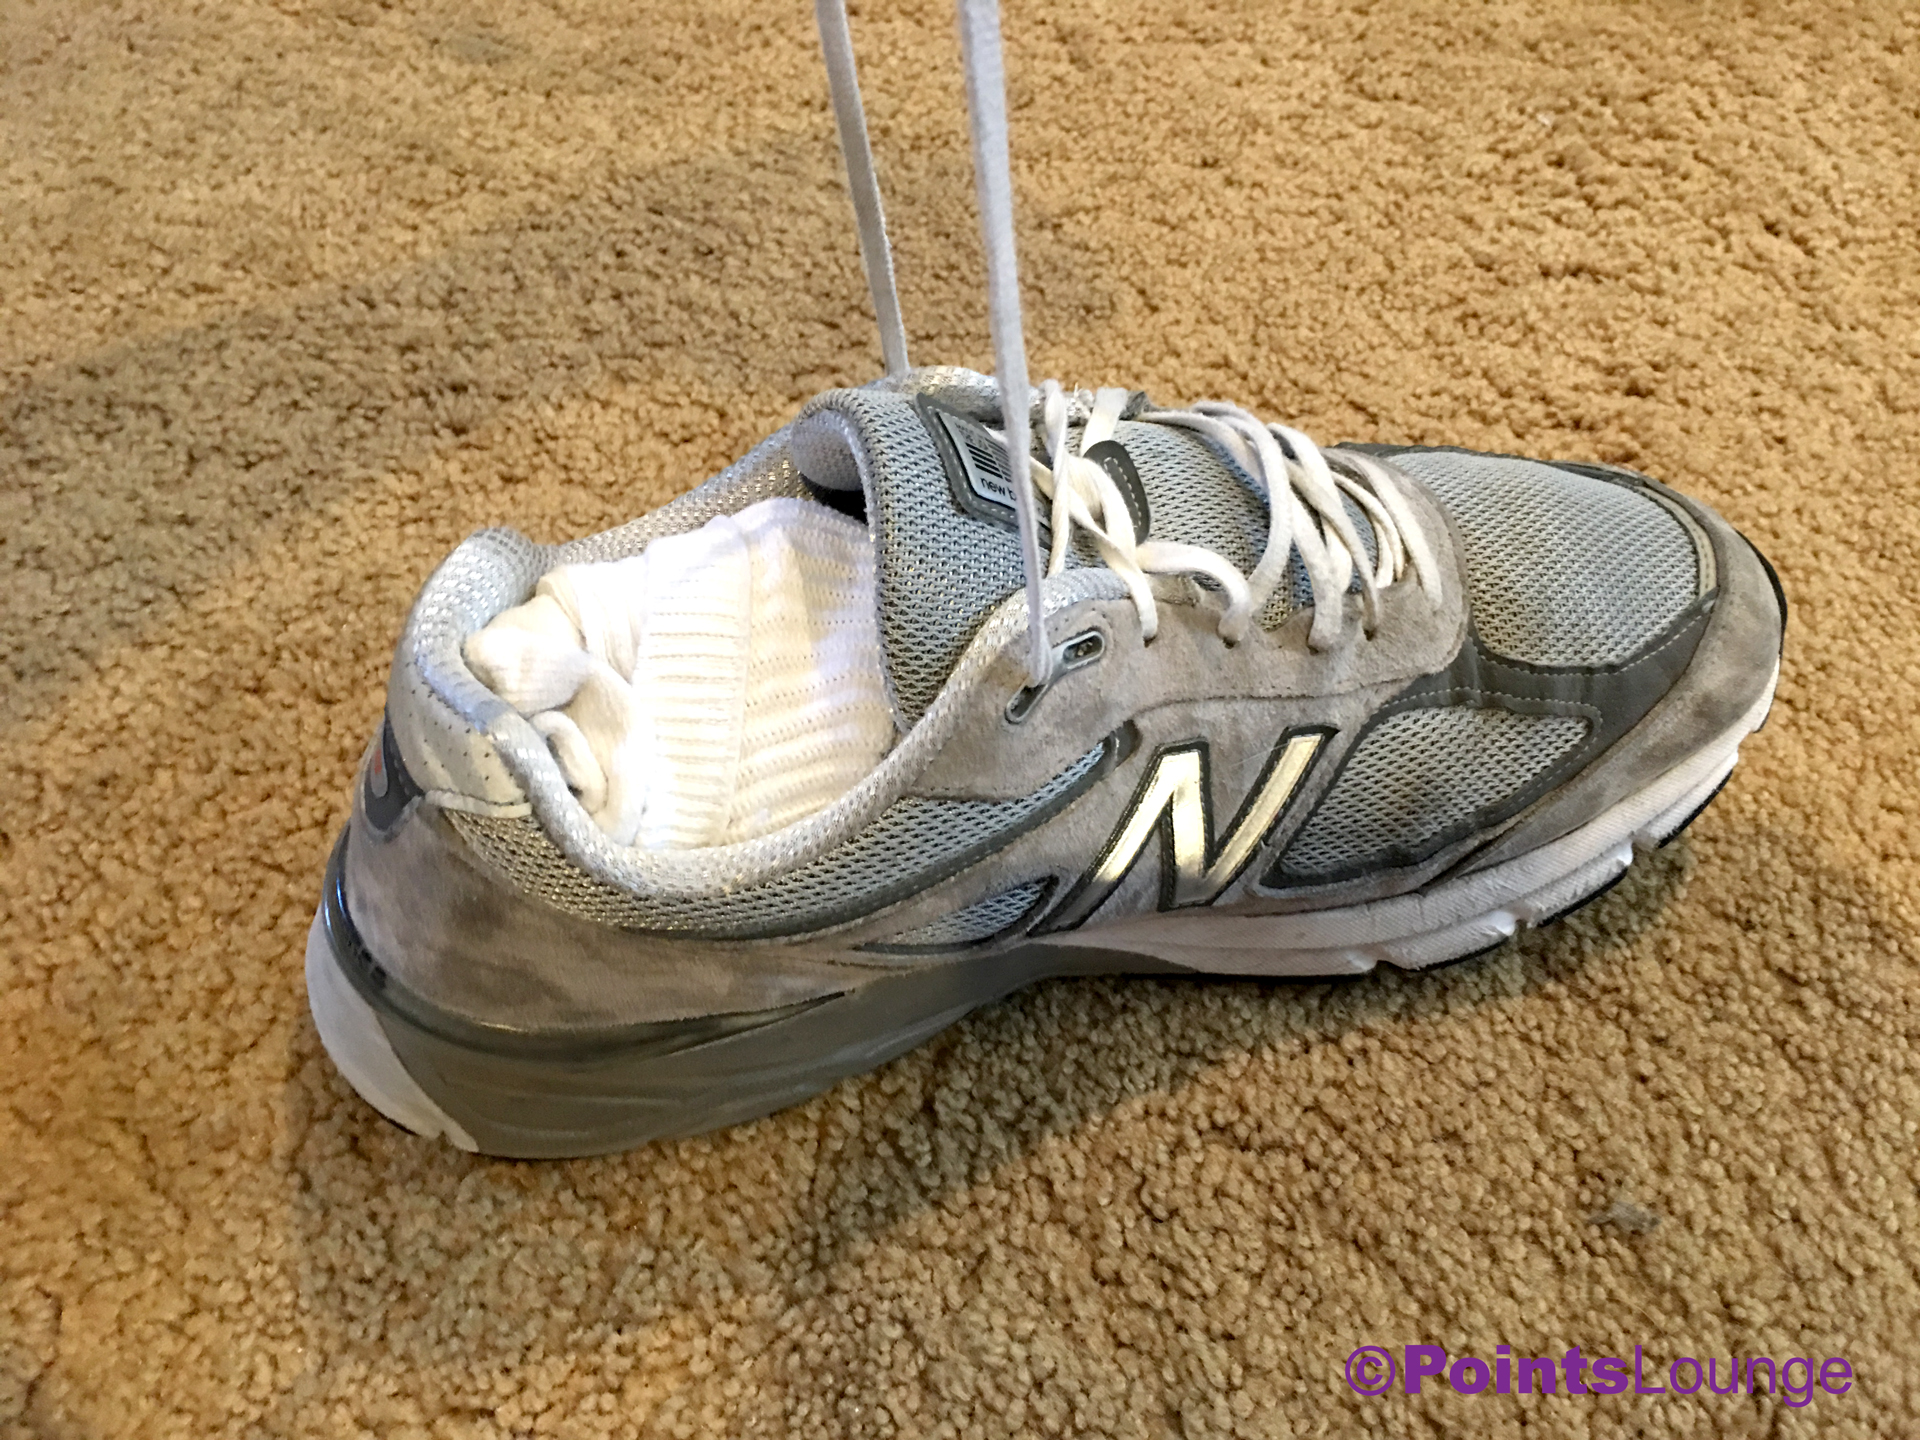 Tightening a New Balance M990GL4 Grey/Castlerock shoe packed with socks.